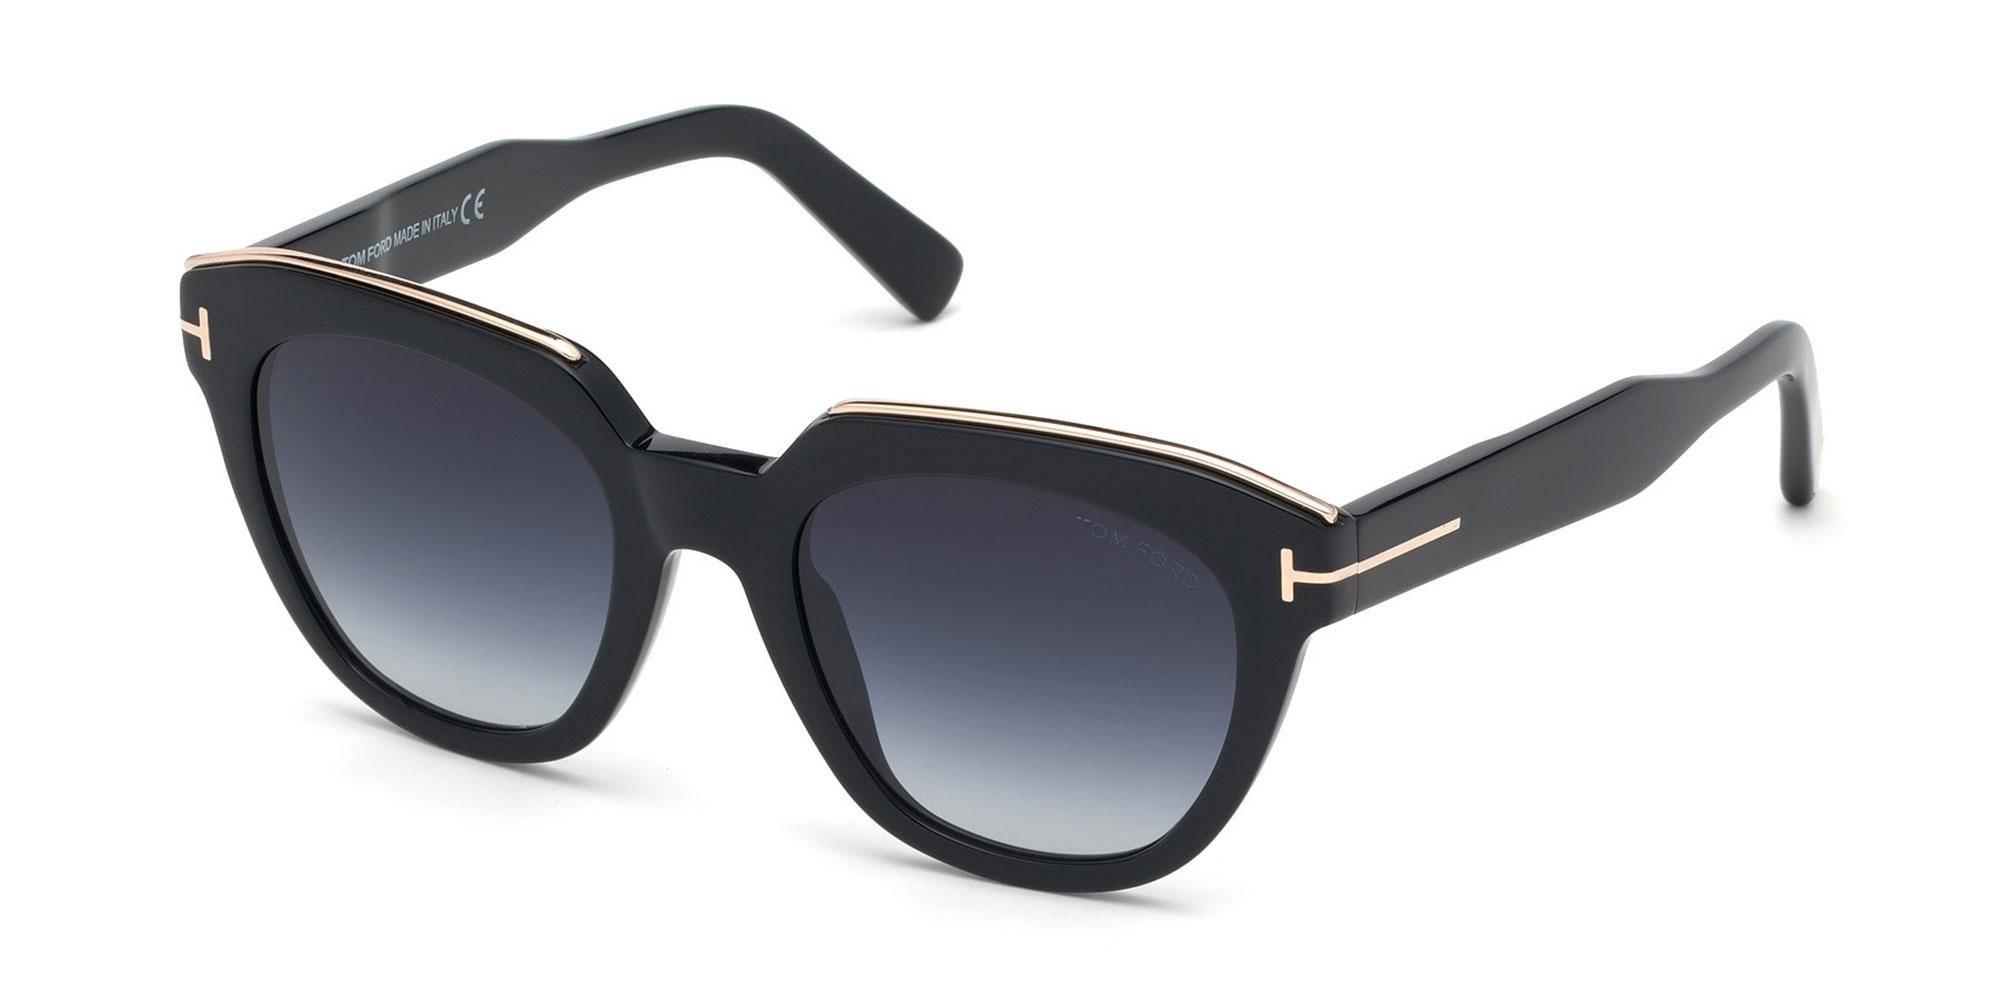 01W FT0686 Sunglasses, Tom Ford